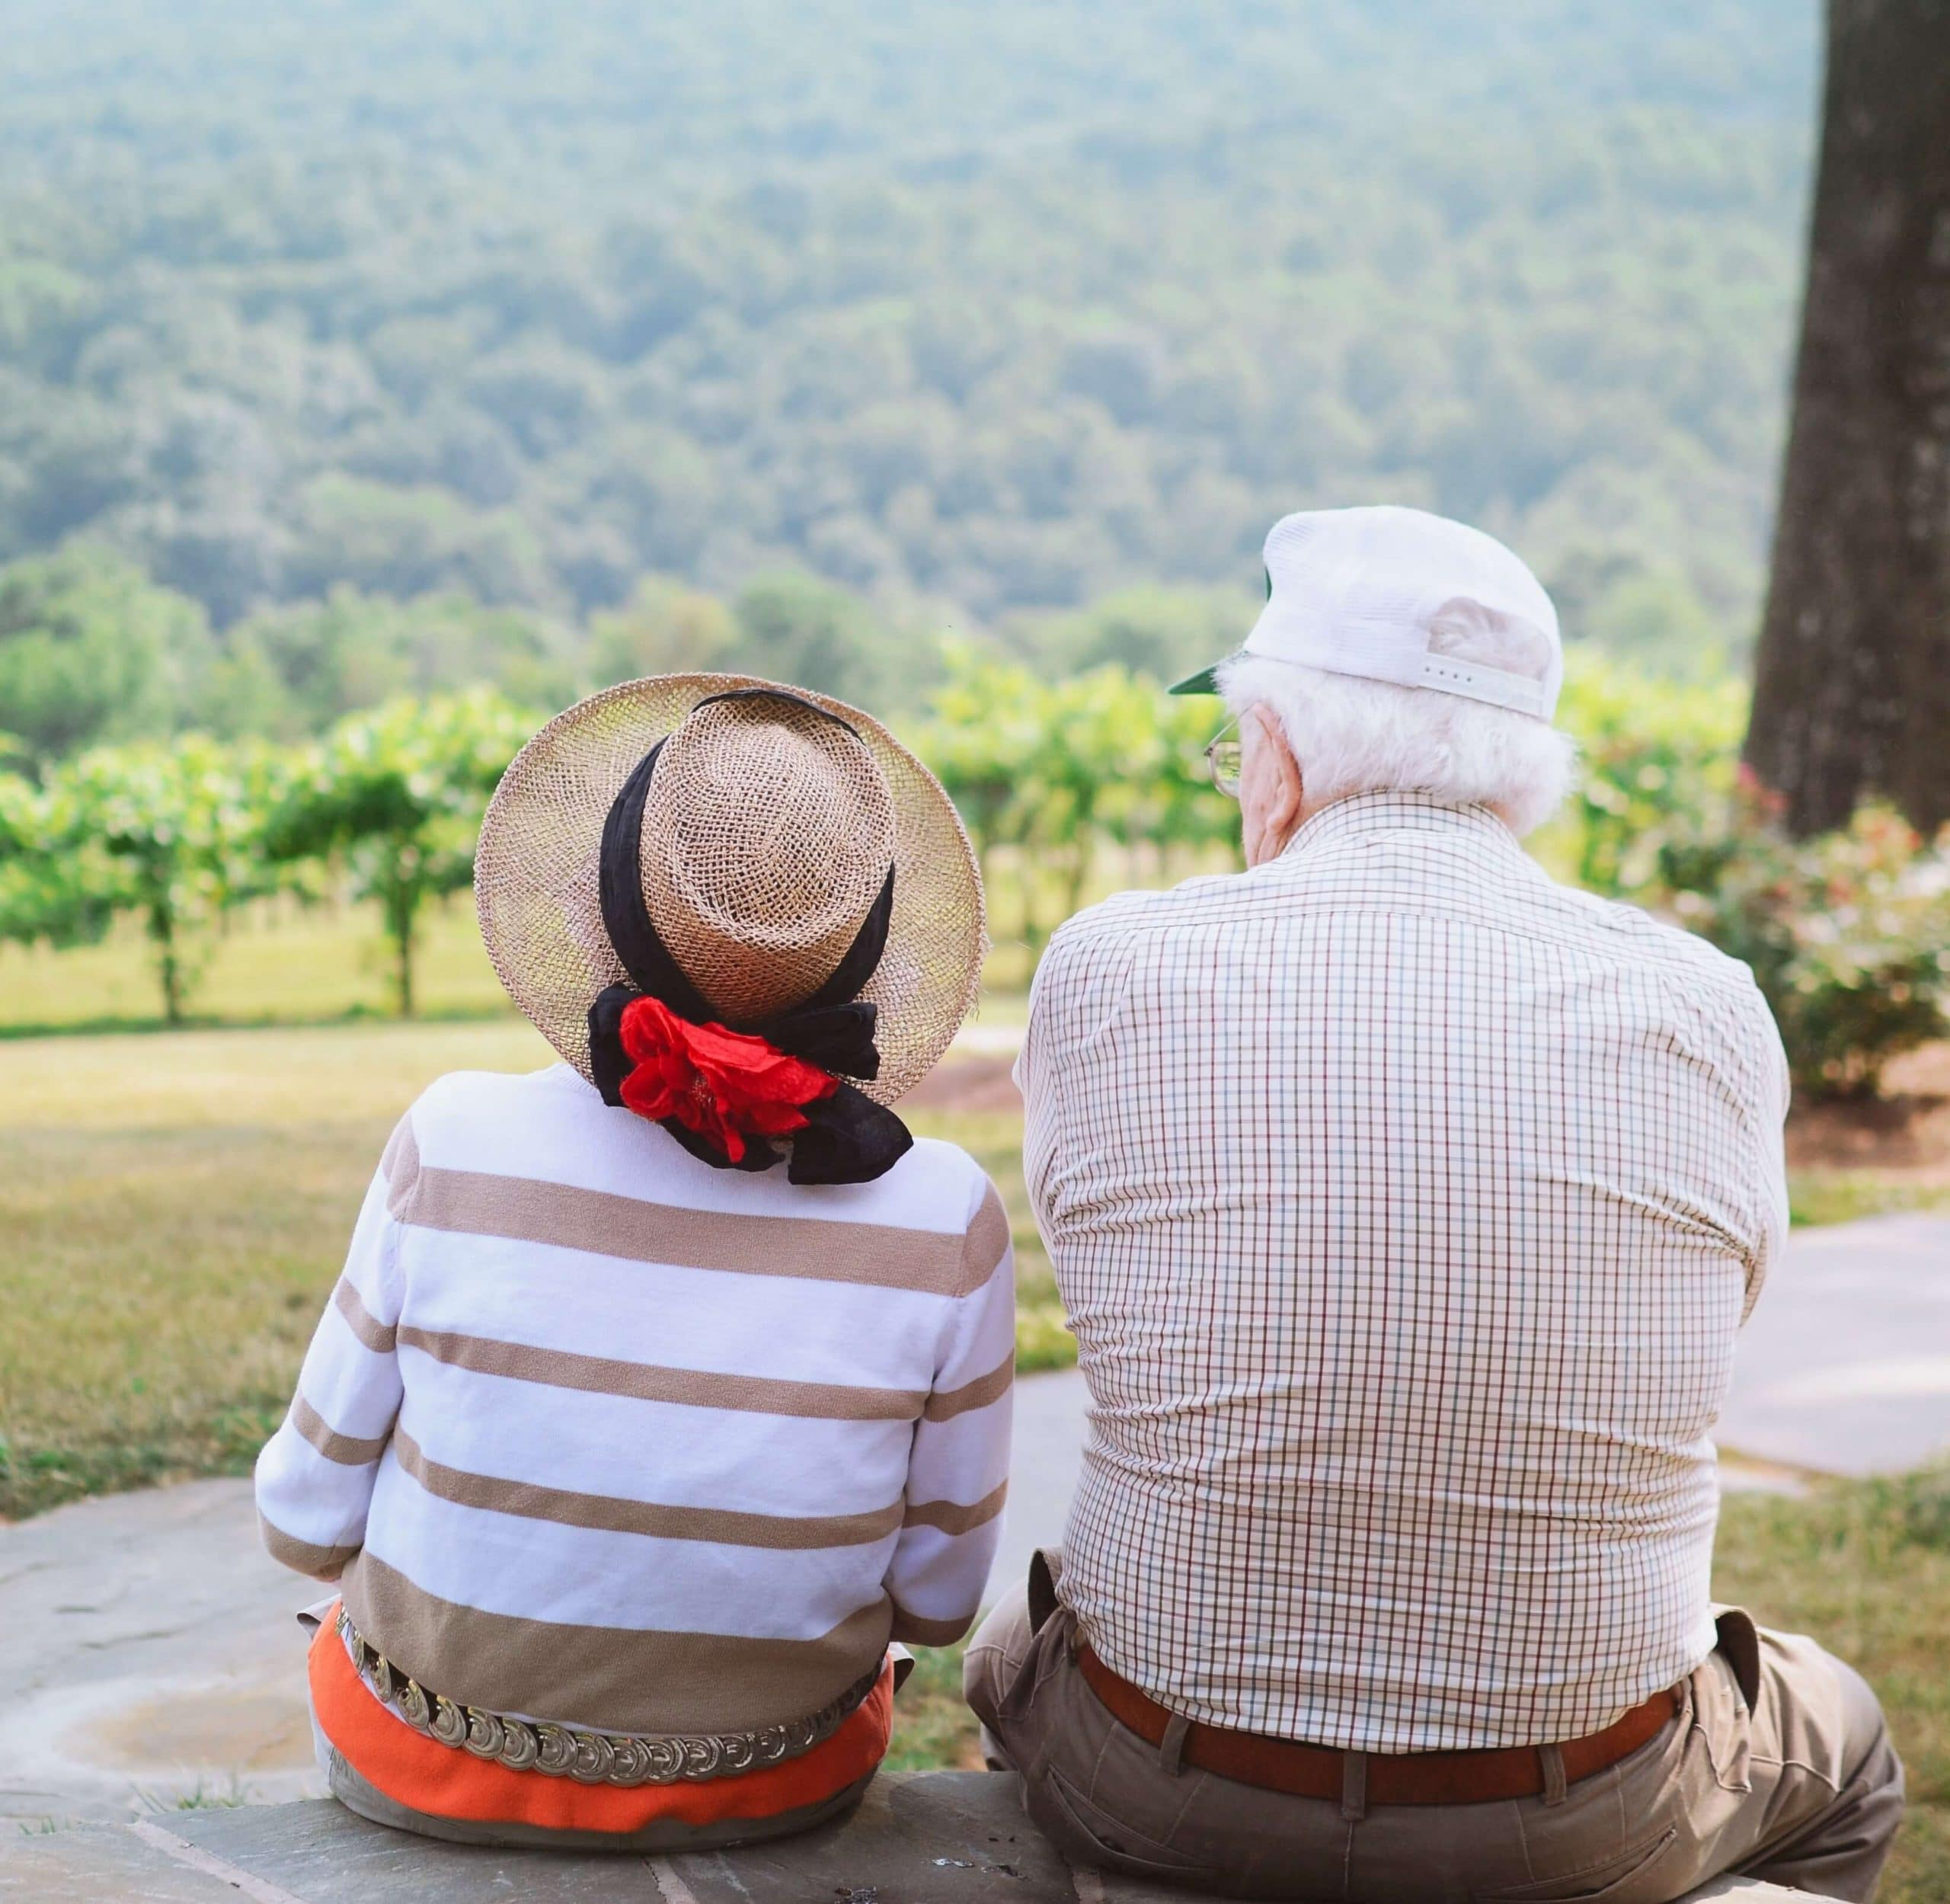 Healthcare for retirees in Spain